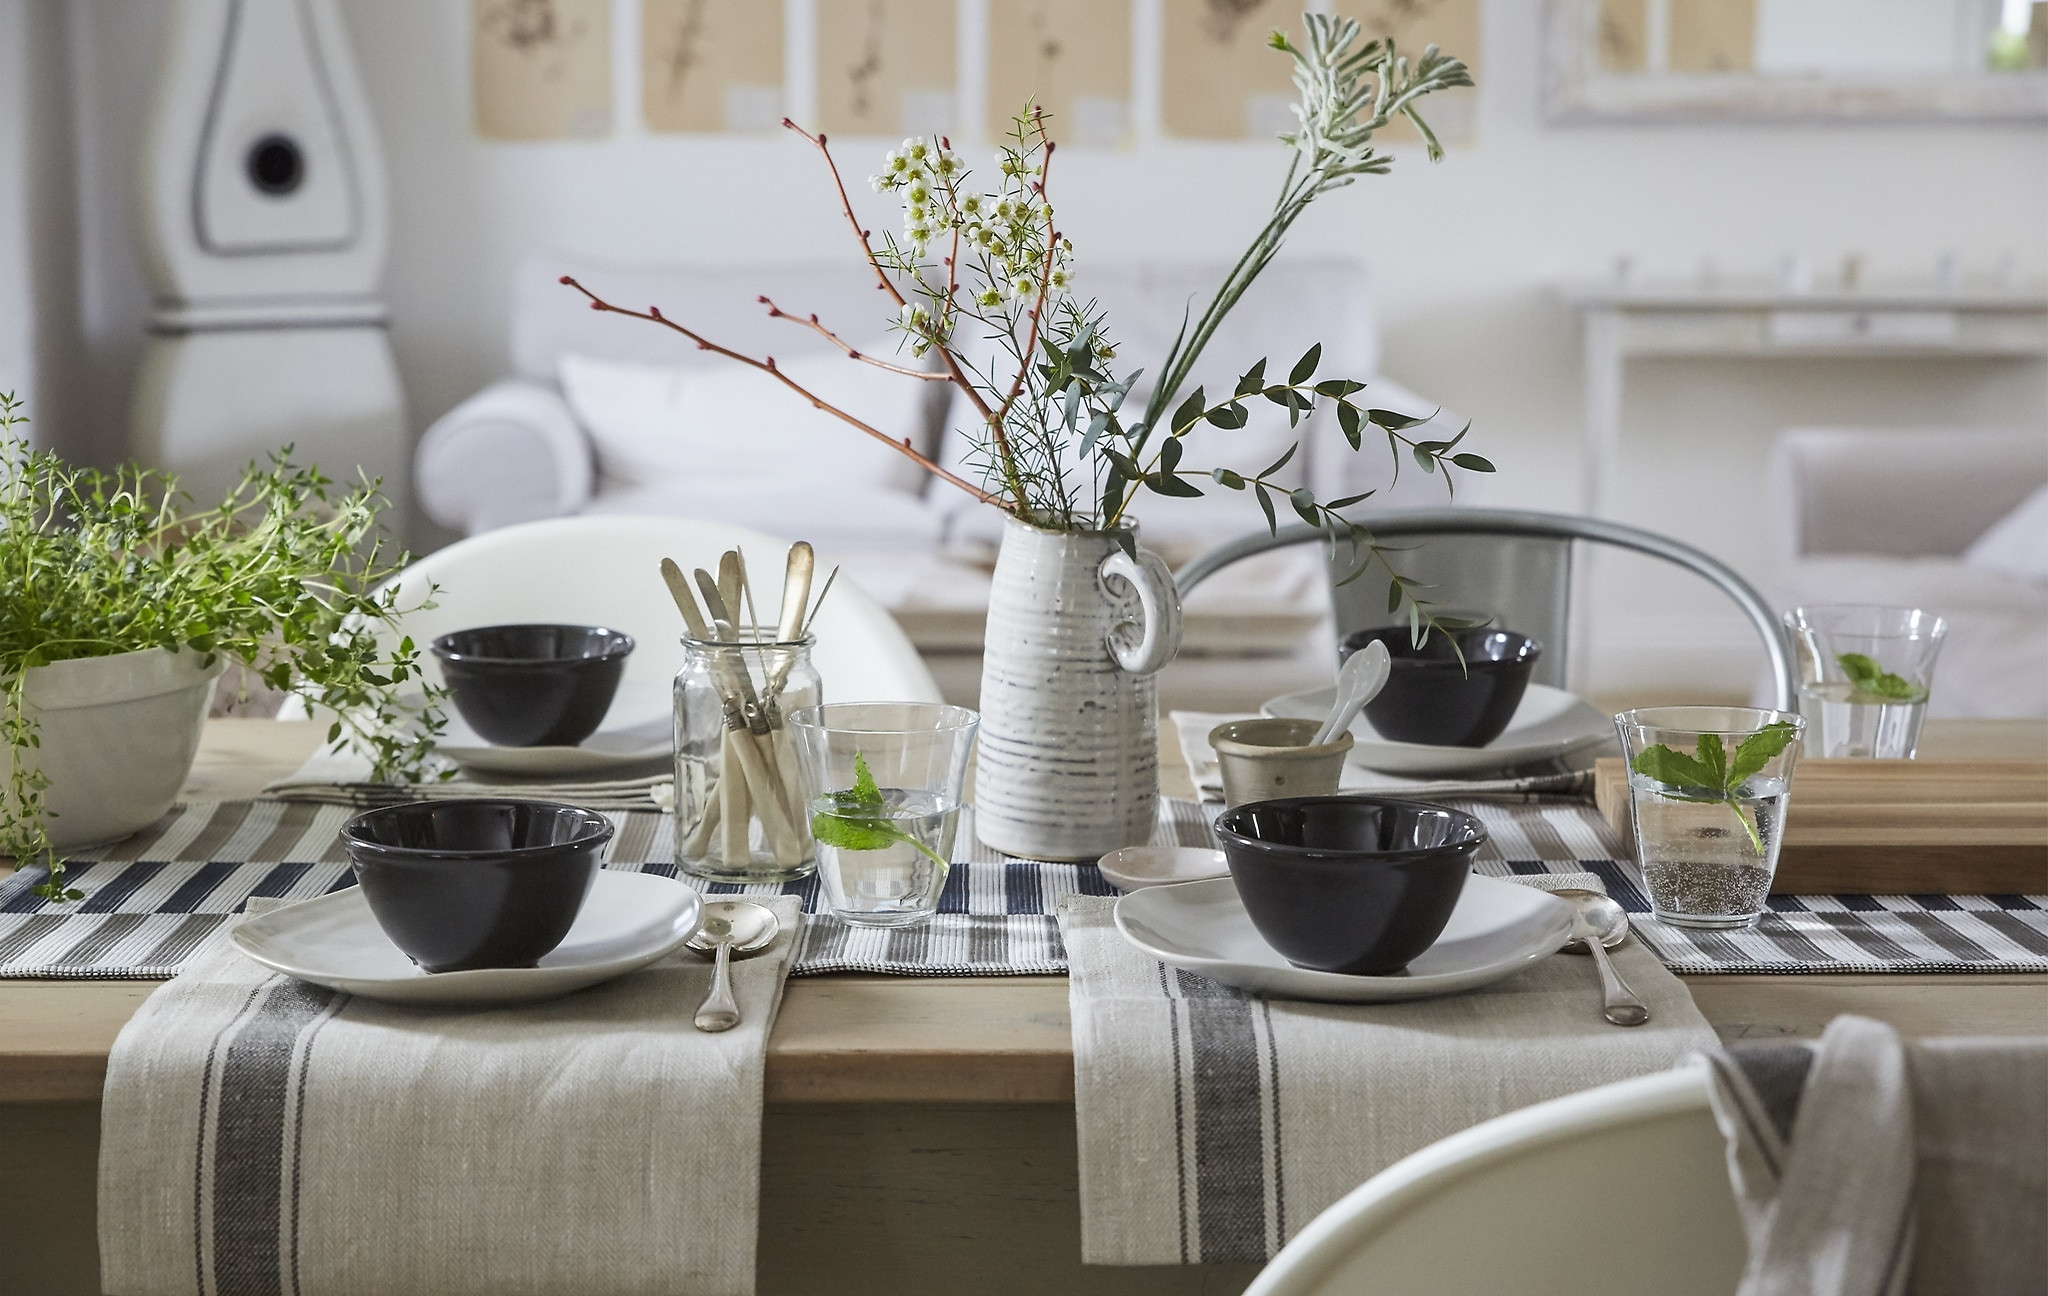 nicole miller home vase of ideas ikea for a neutral coloured table setting with cotton napkins simple place settings and a natural